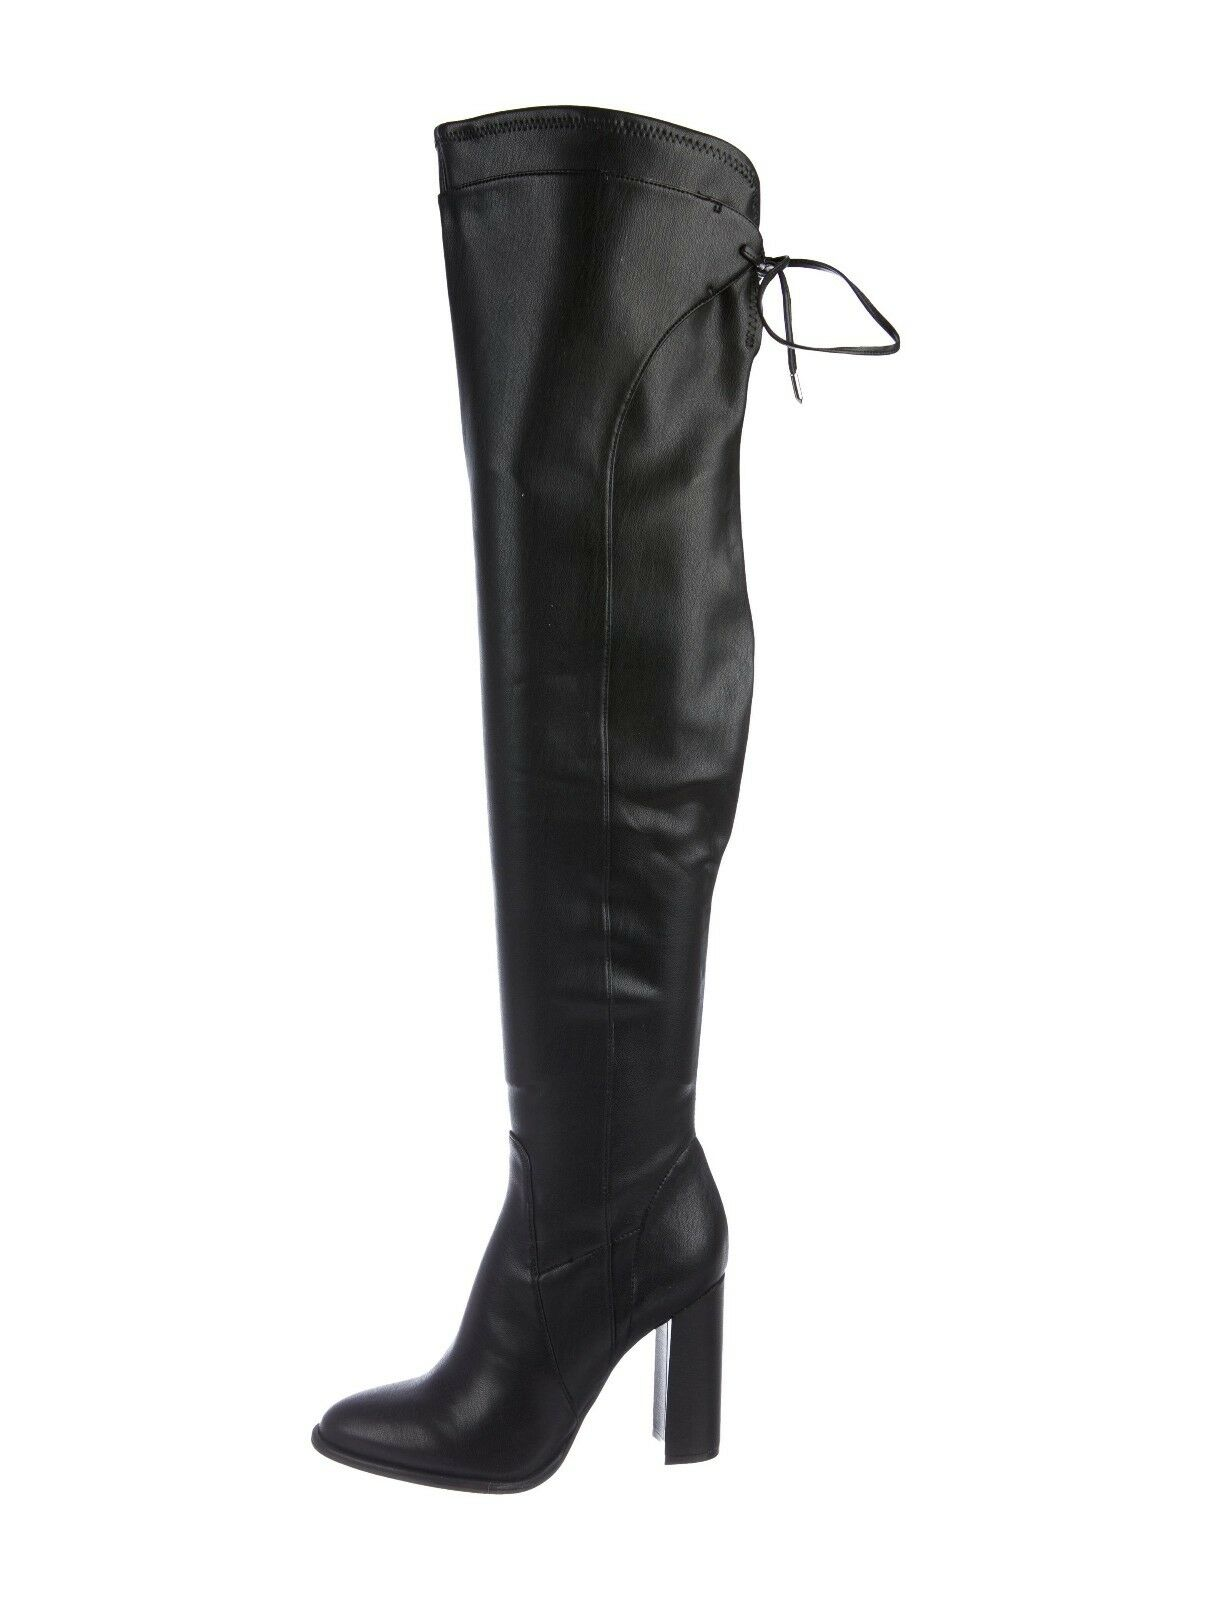 7.5  Marc Fisher Boots over-The-Knee over-The-Knee over-The-Knee Boots Black Leather thigh high Boots 201524